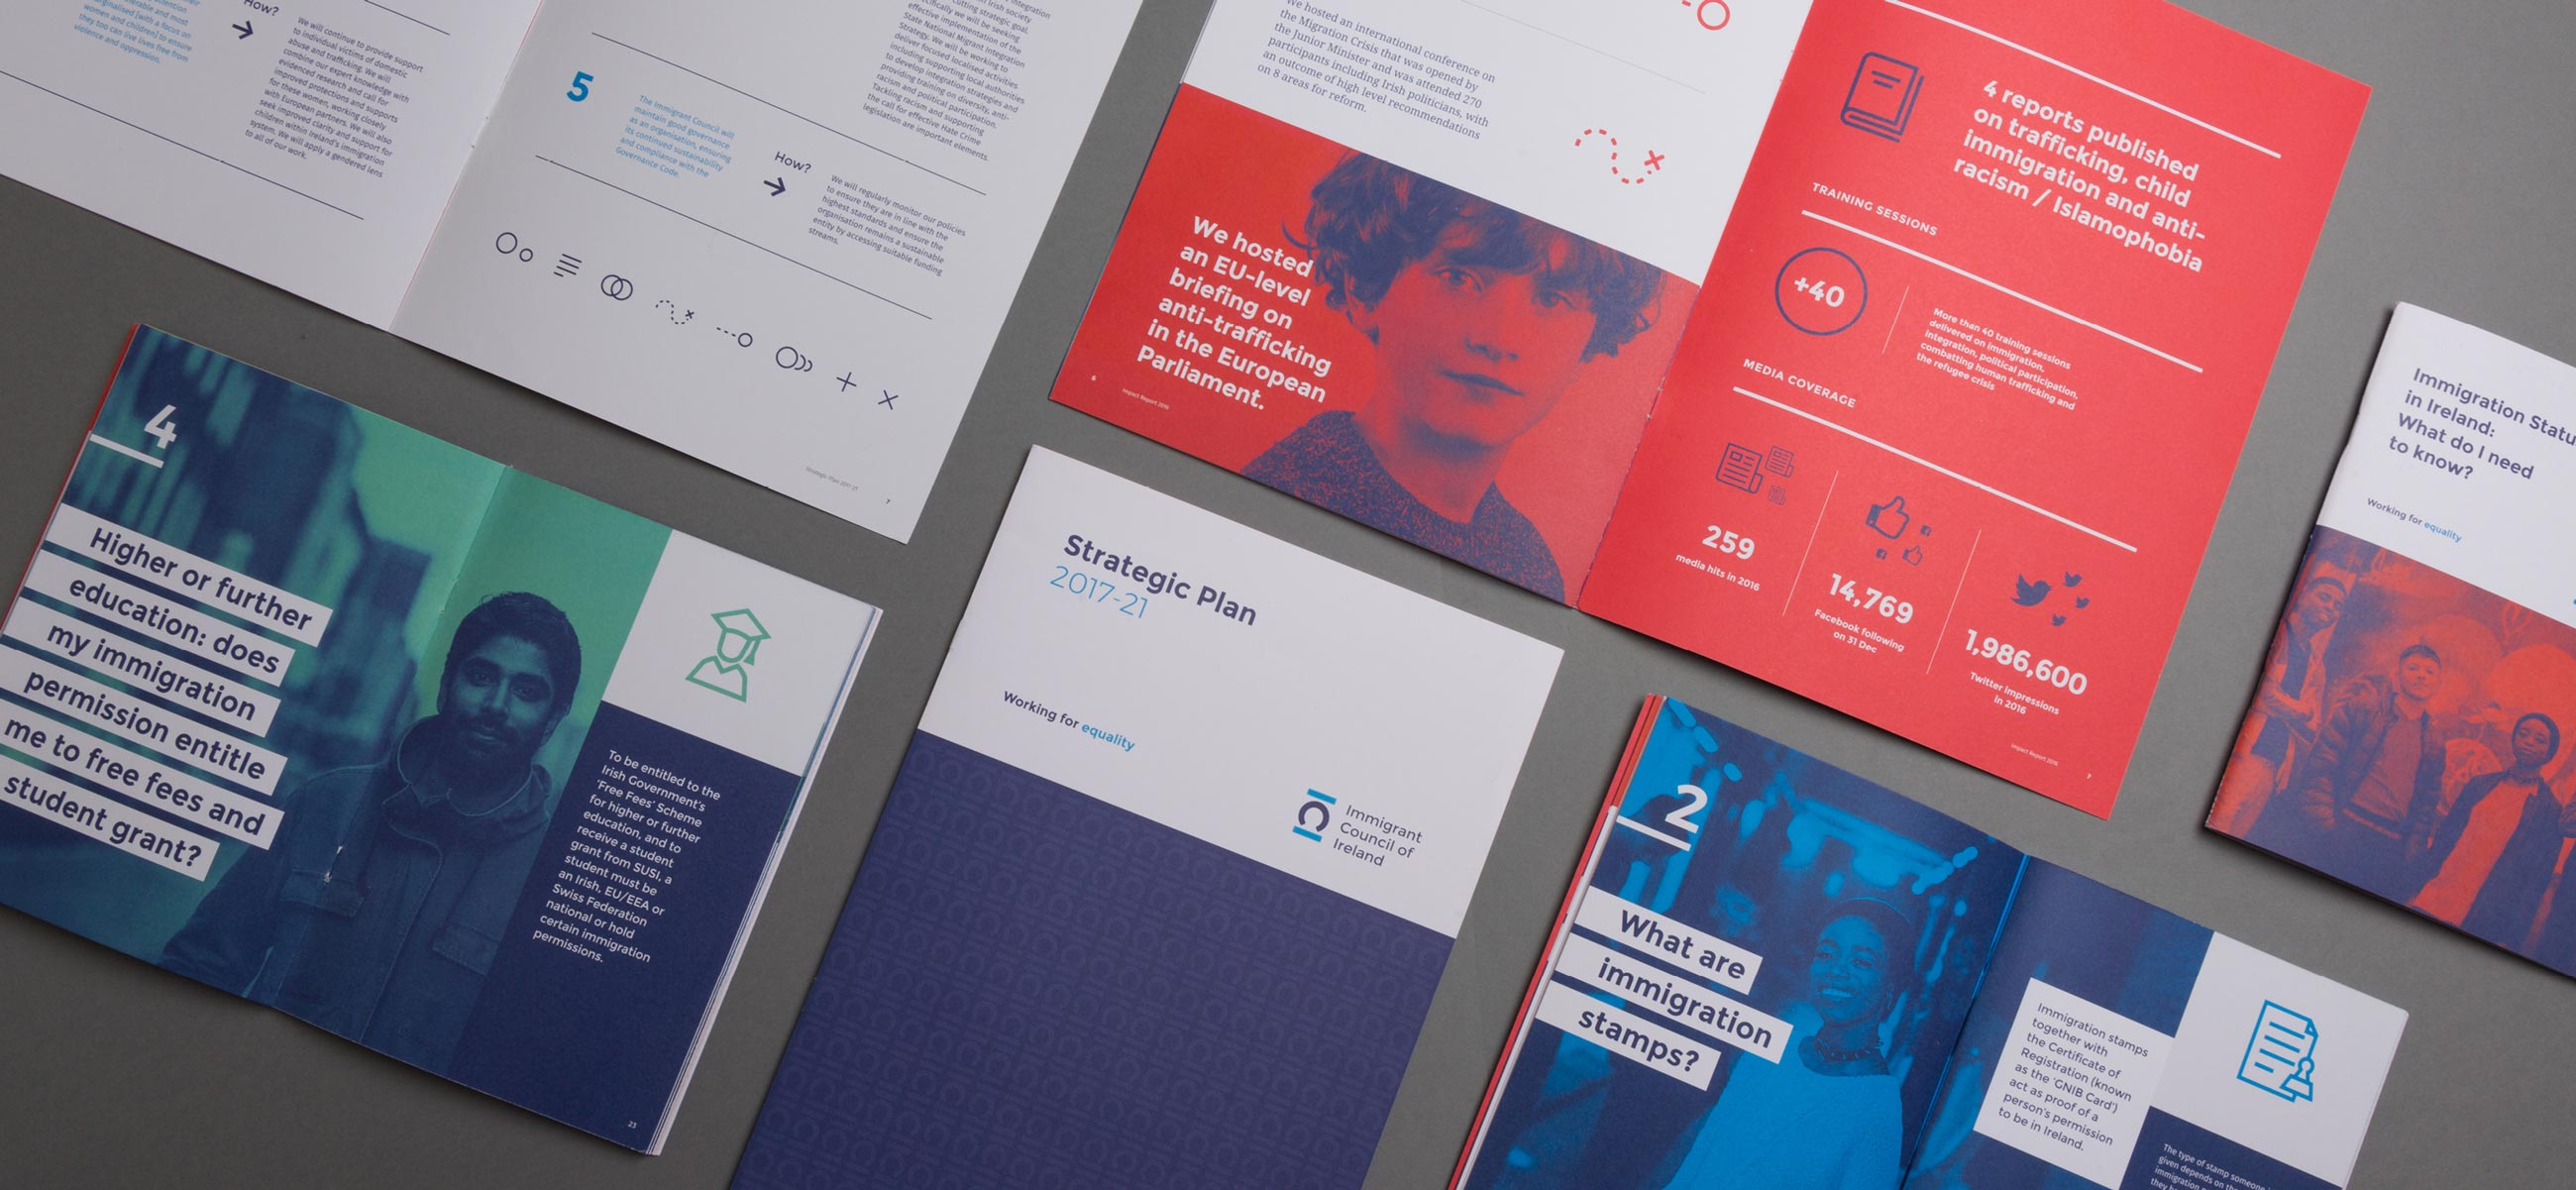 Immigrant Council of Ireland Editorial graphic design selection of print publications